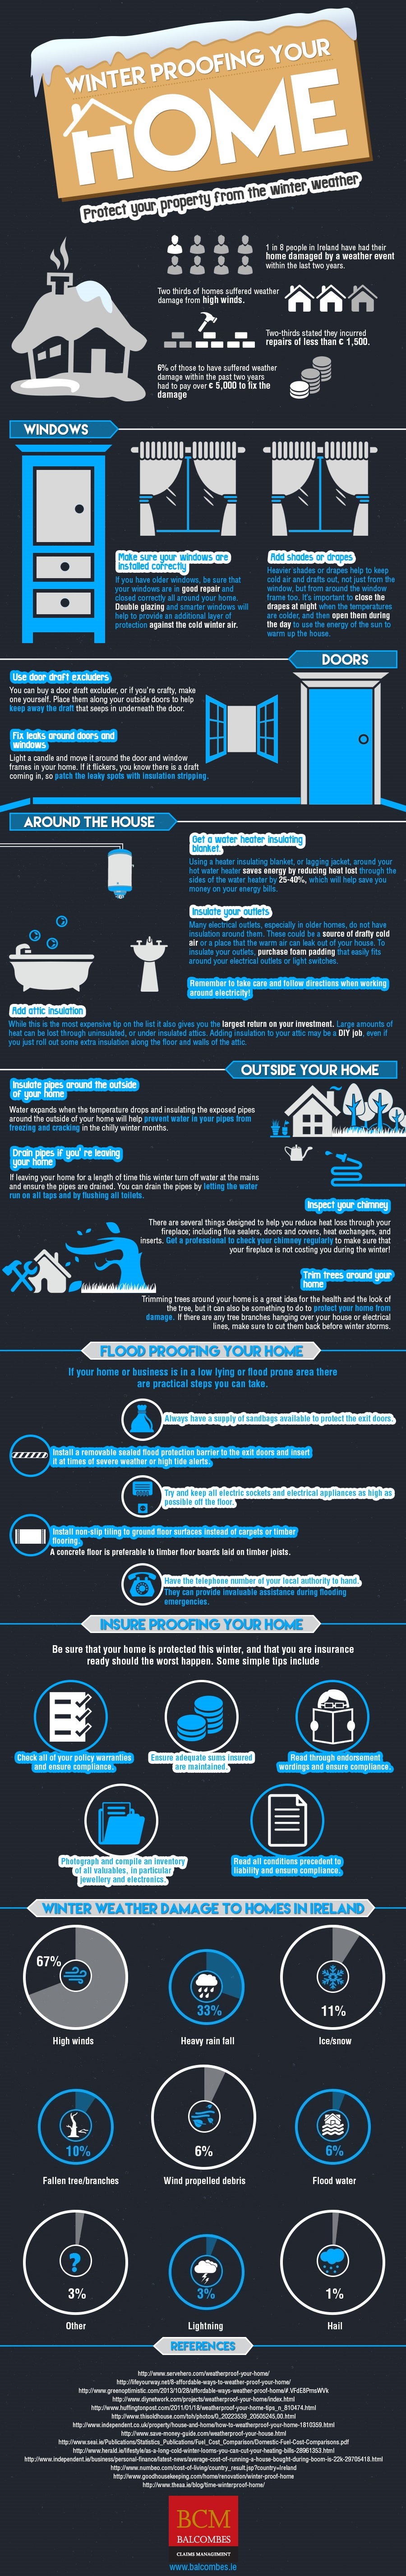 Winter proof infographic